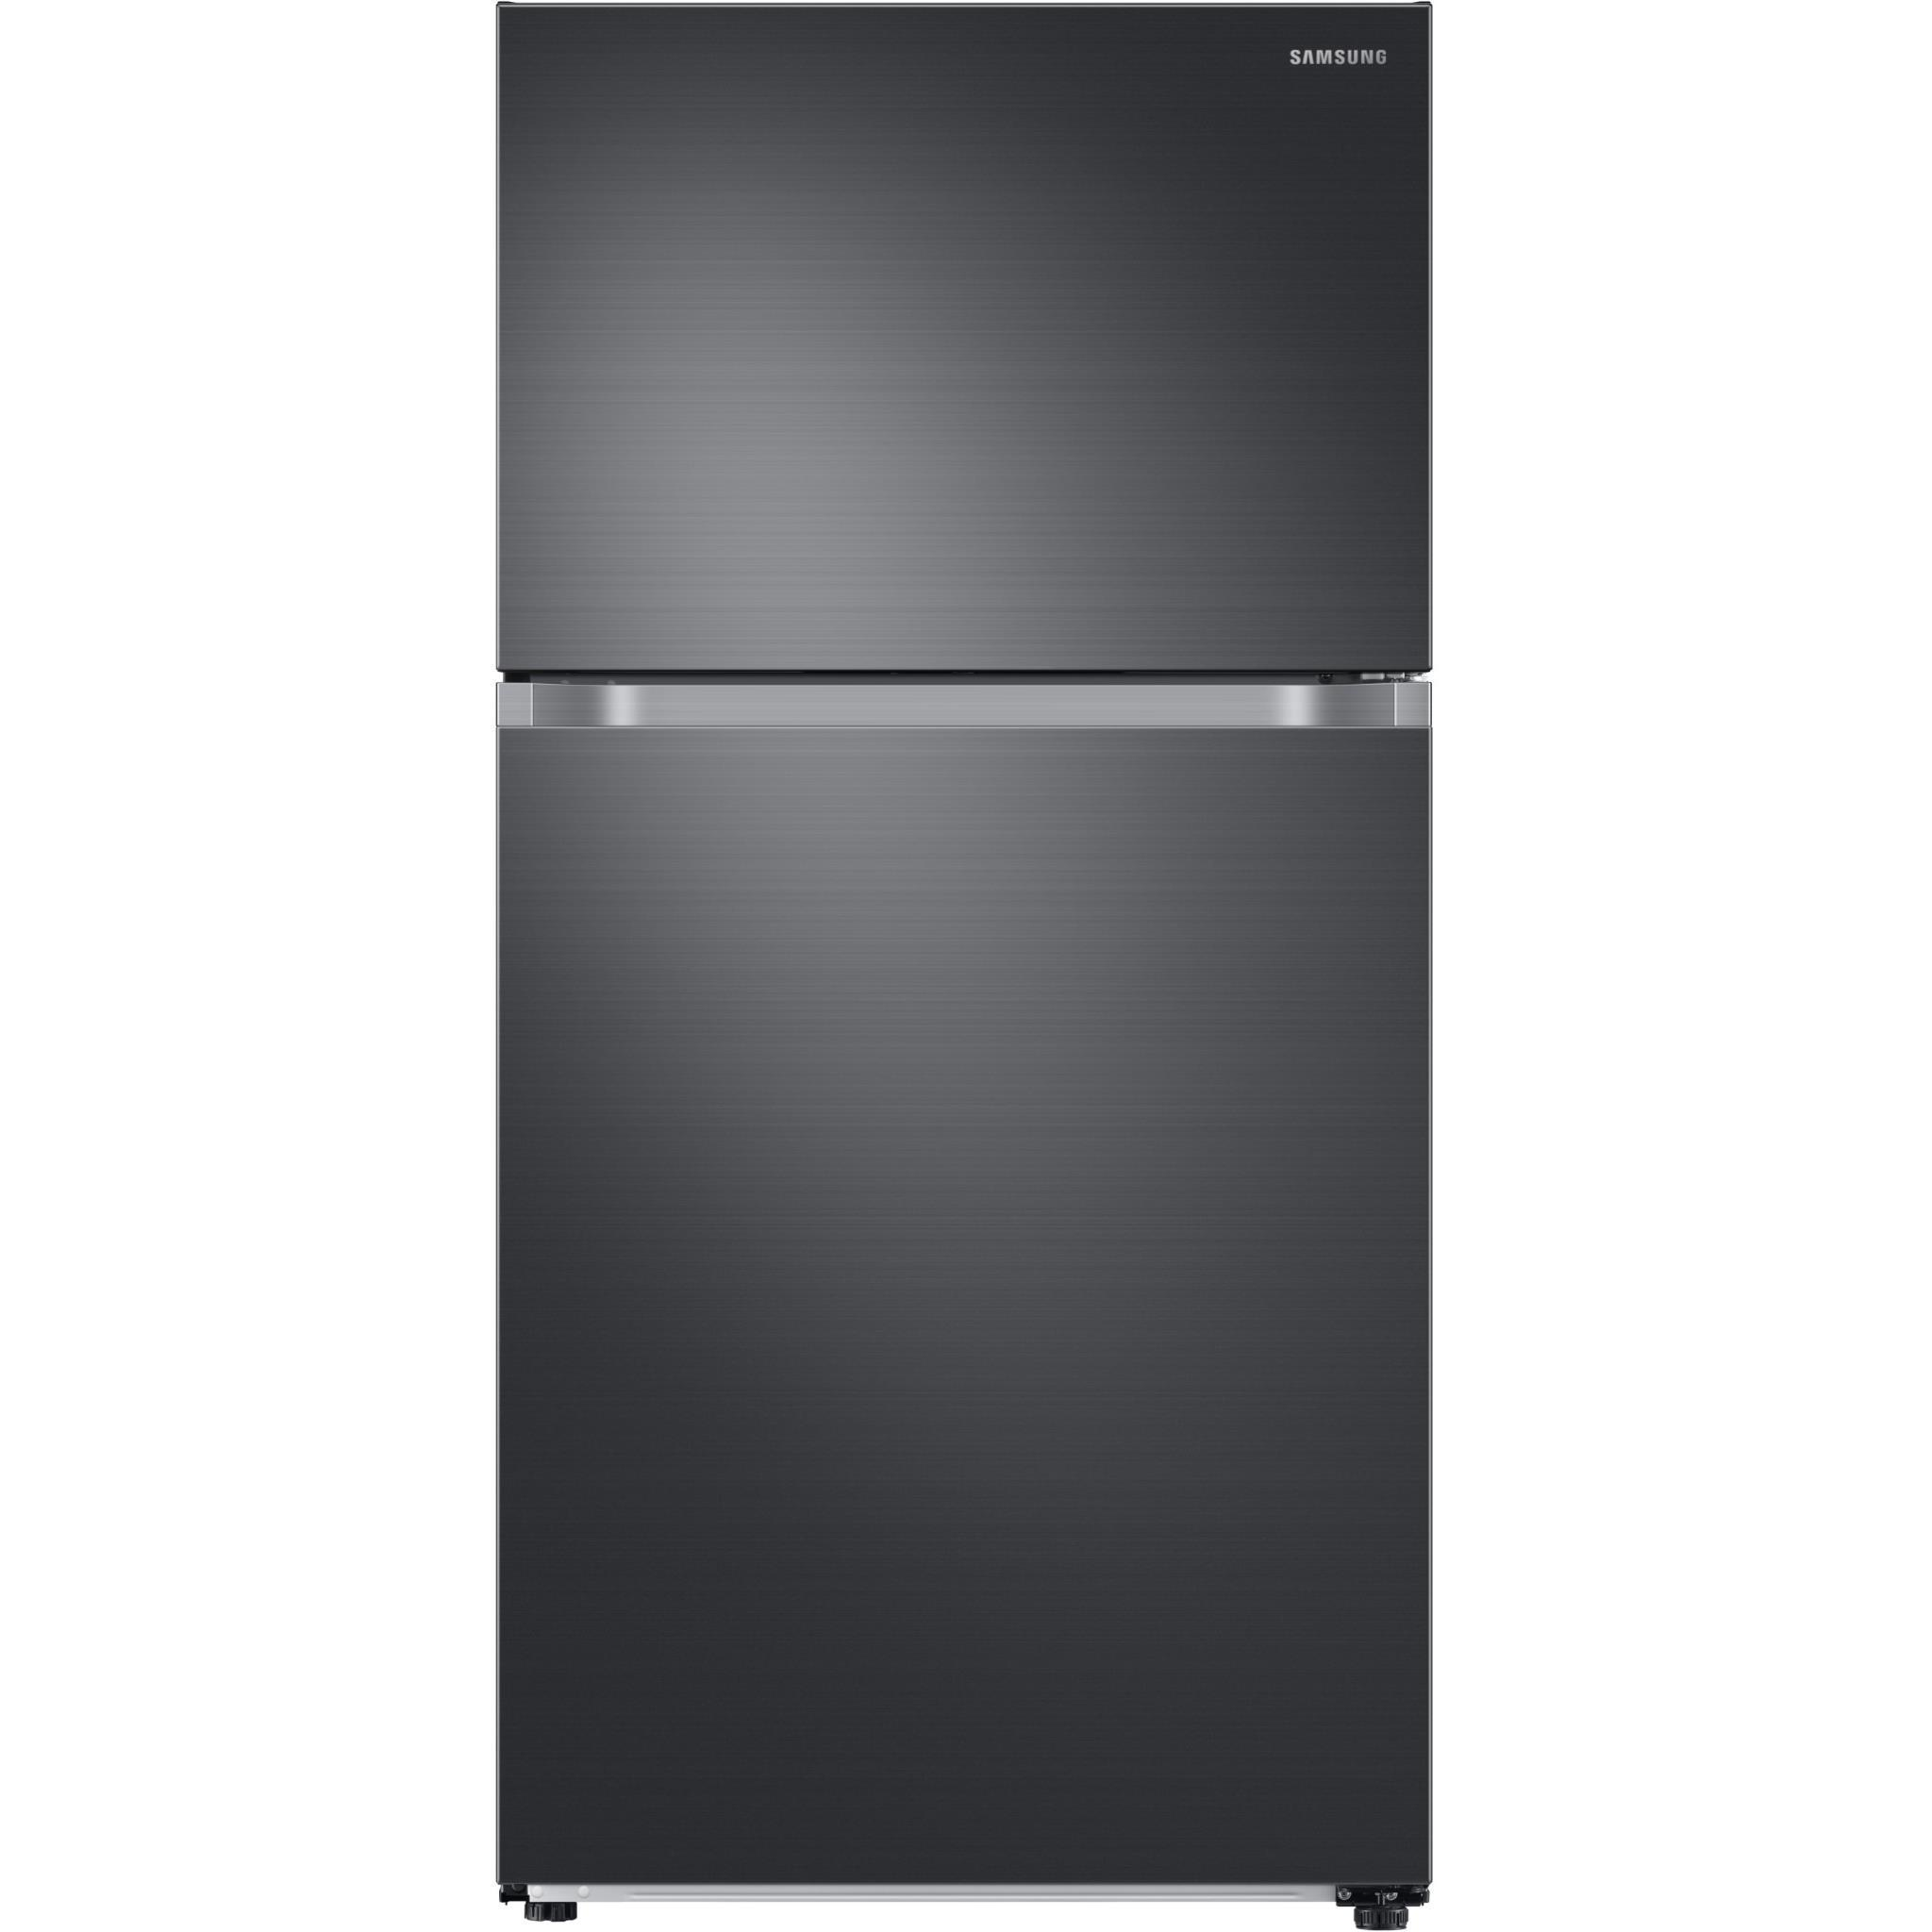 Samsung SR625BLSTC 628L Top Mount Fridge